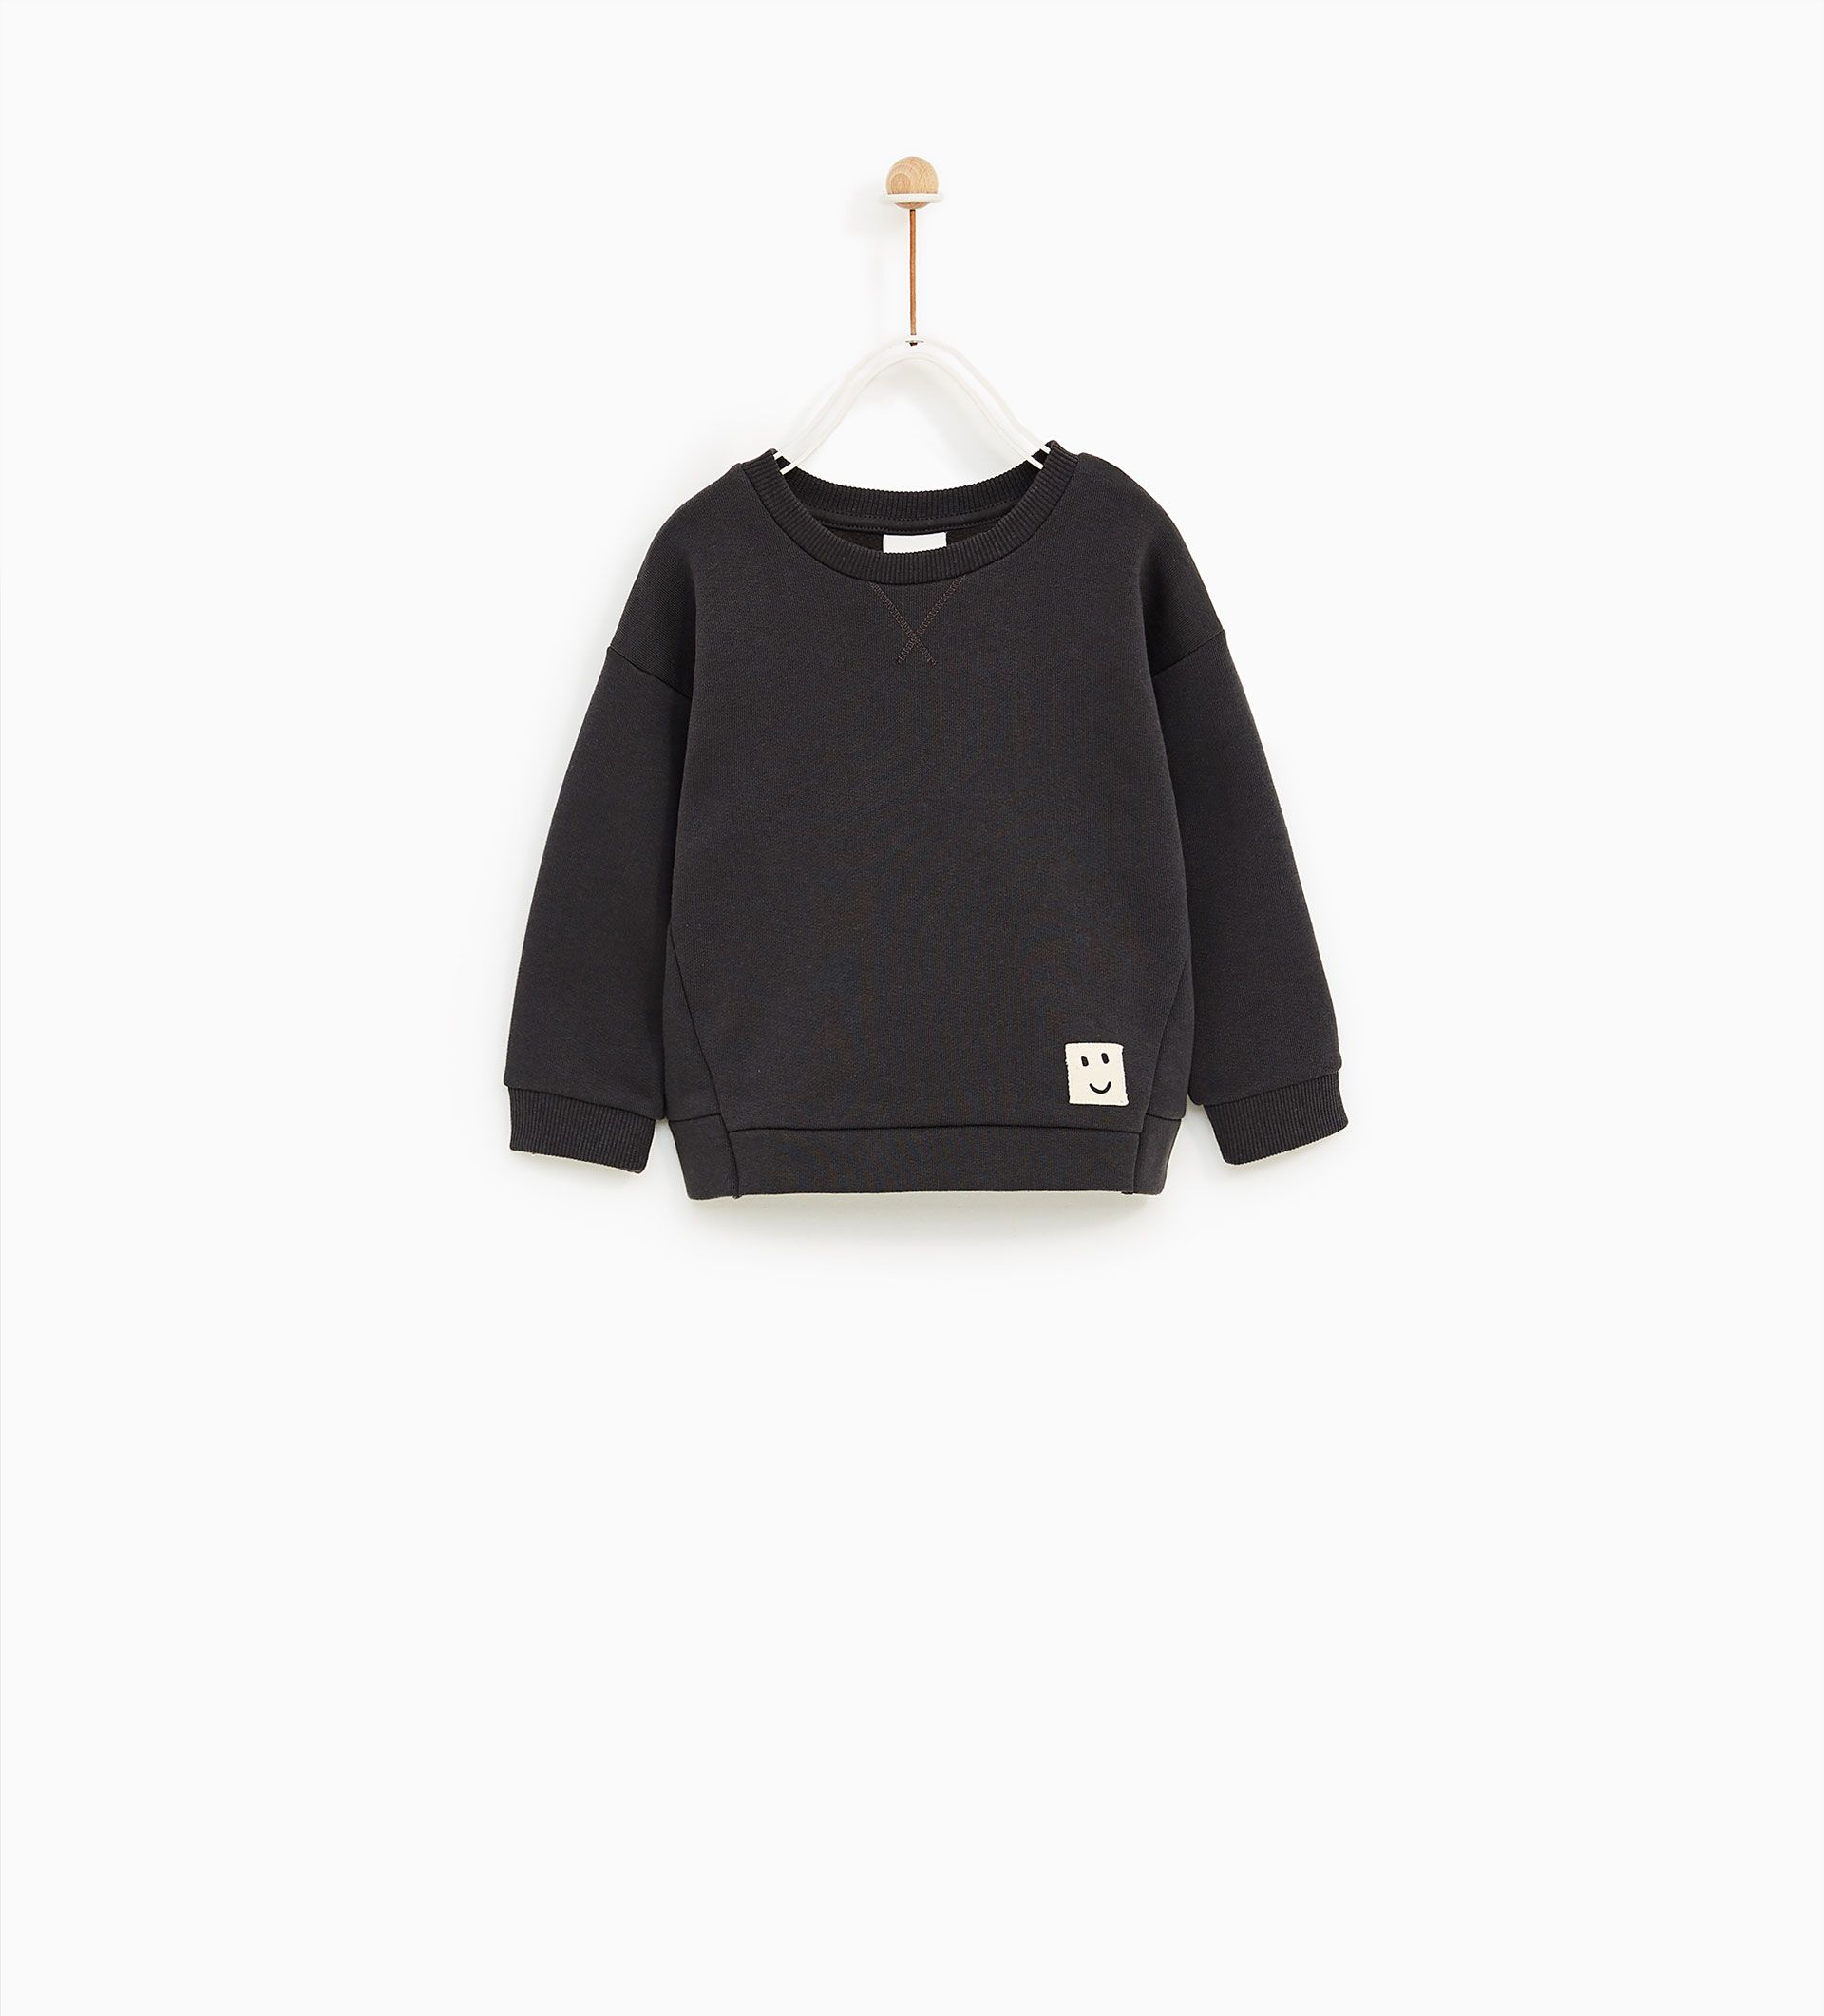 Image 1 Of Patterned Sweatshirt With Label Detail From Zara